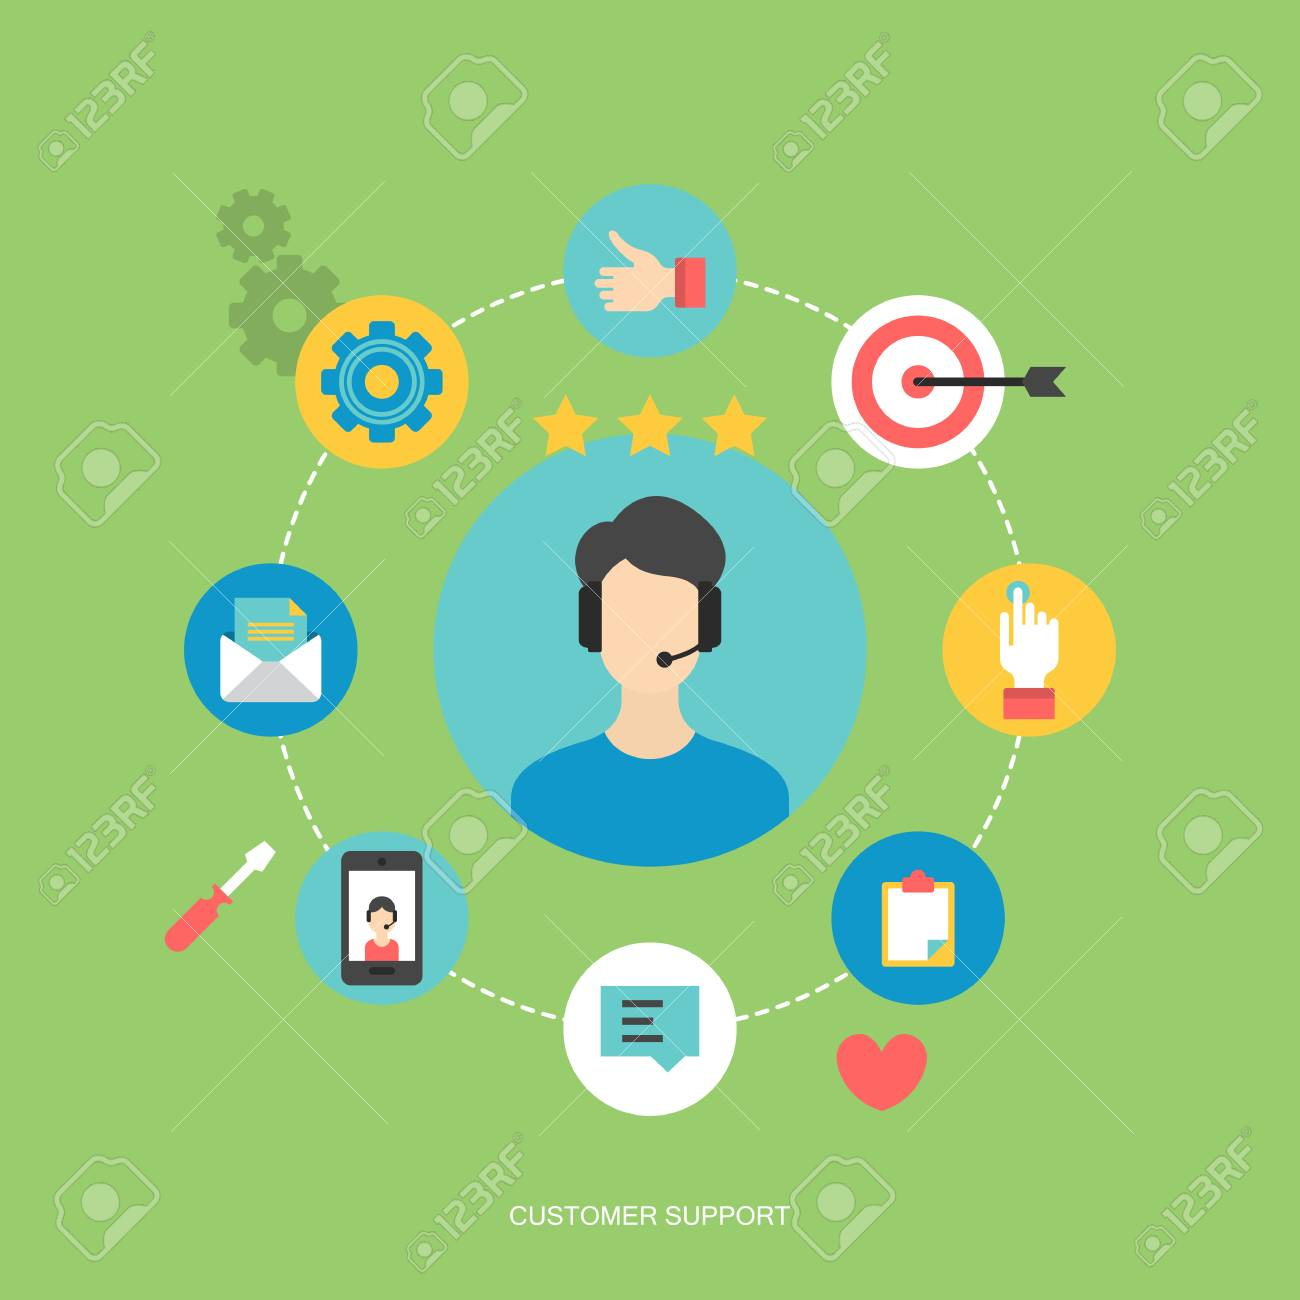 Flat Icons Design For Customer Service And Client Experience Concept Stock Vector